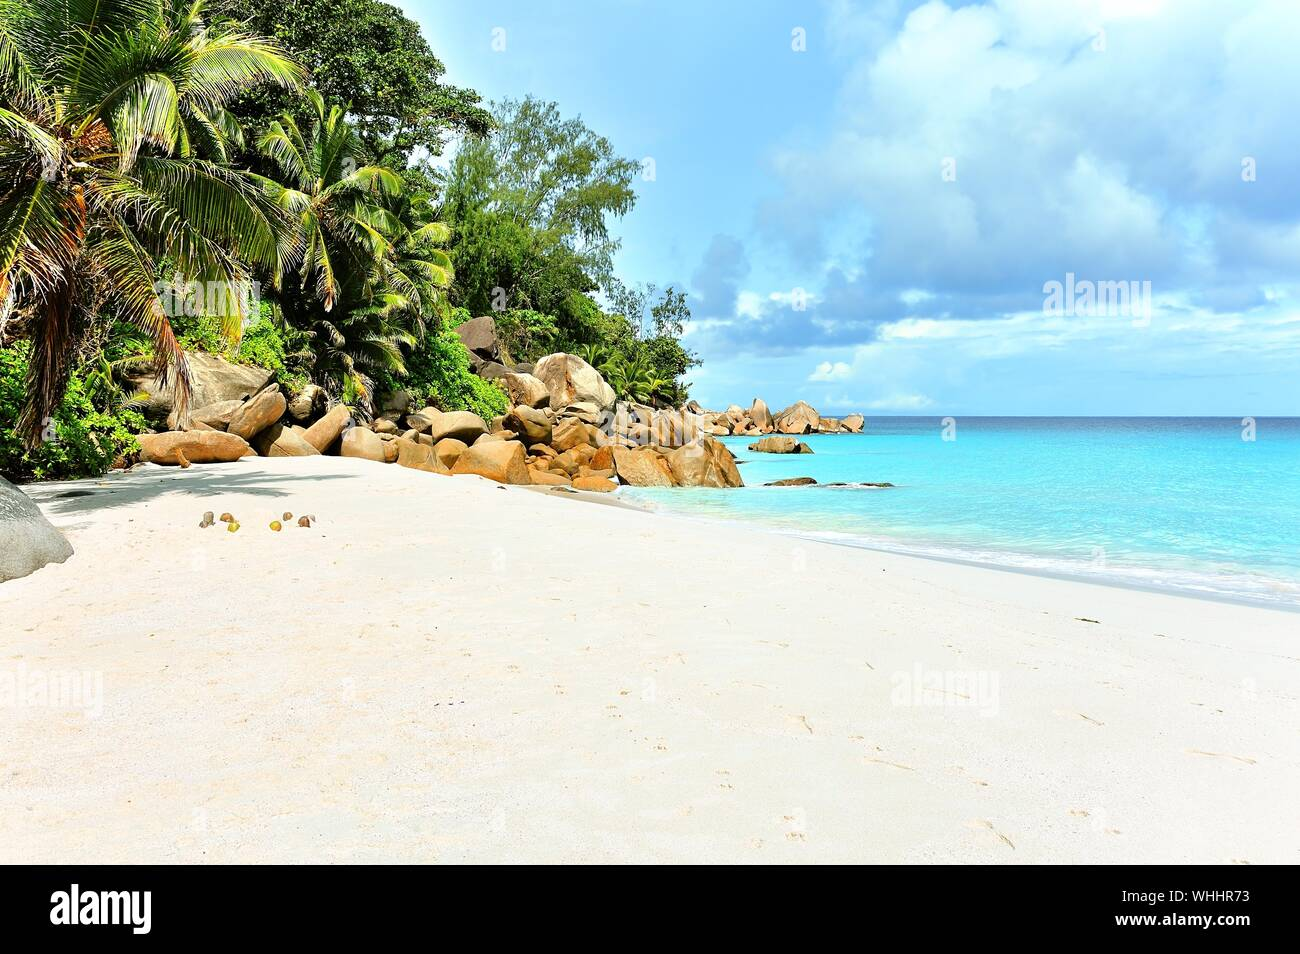 Scenic View Of Beach Against Cloudy Sky Stock Photo